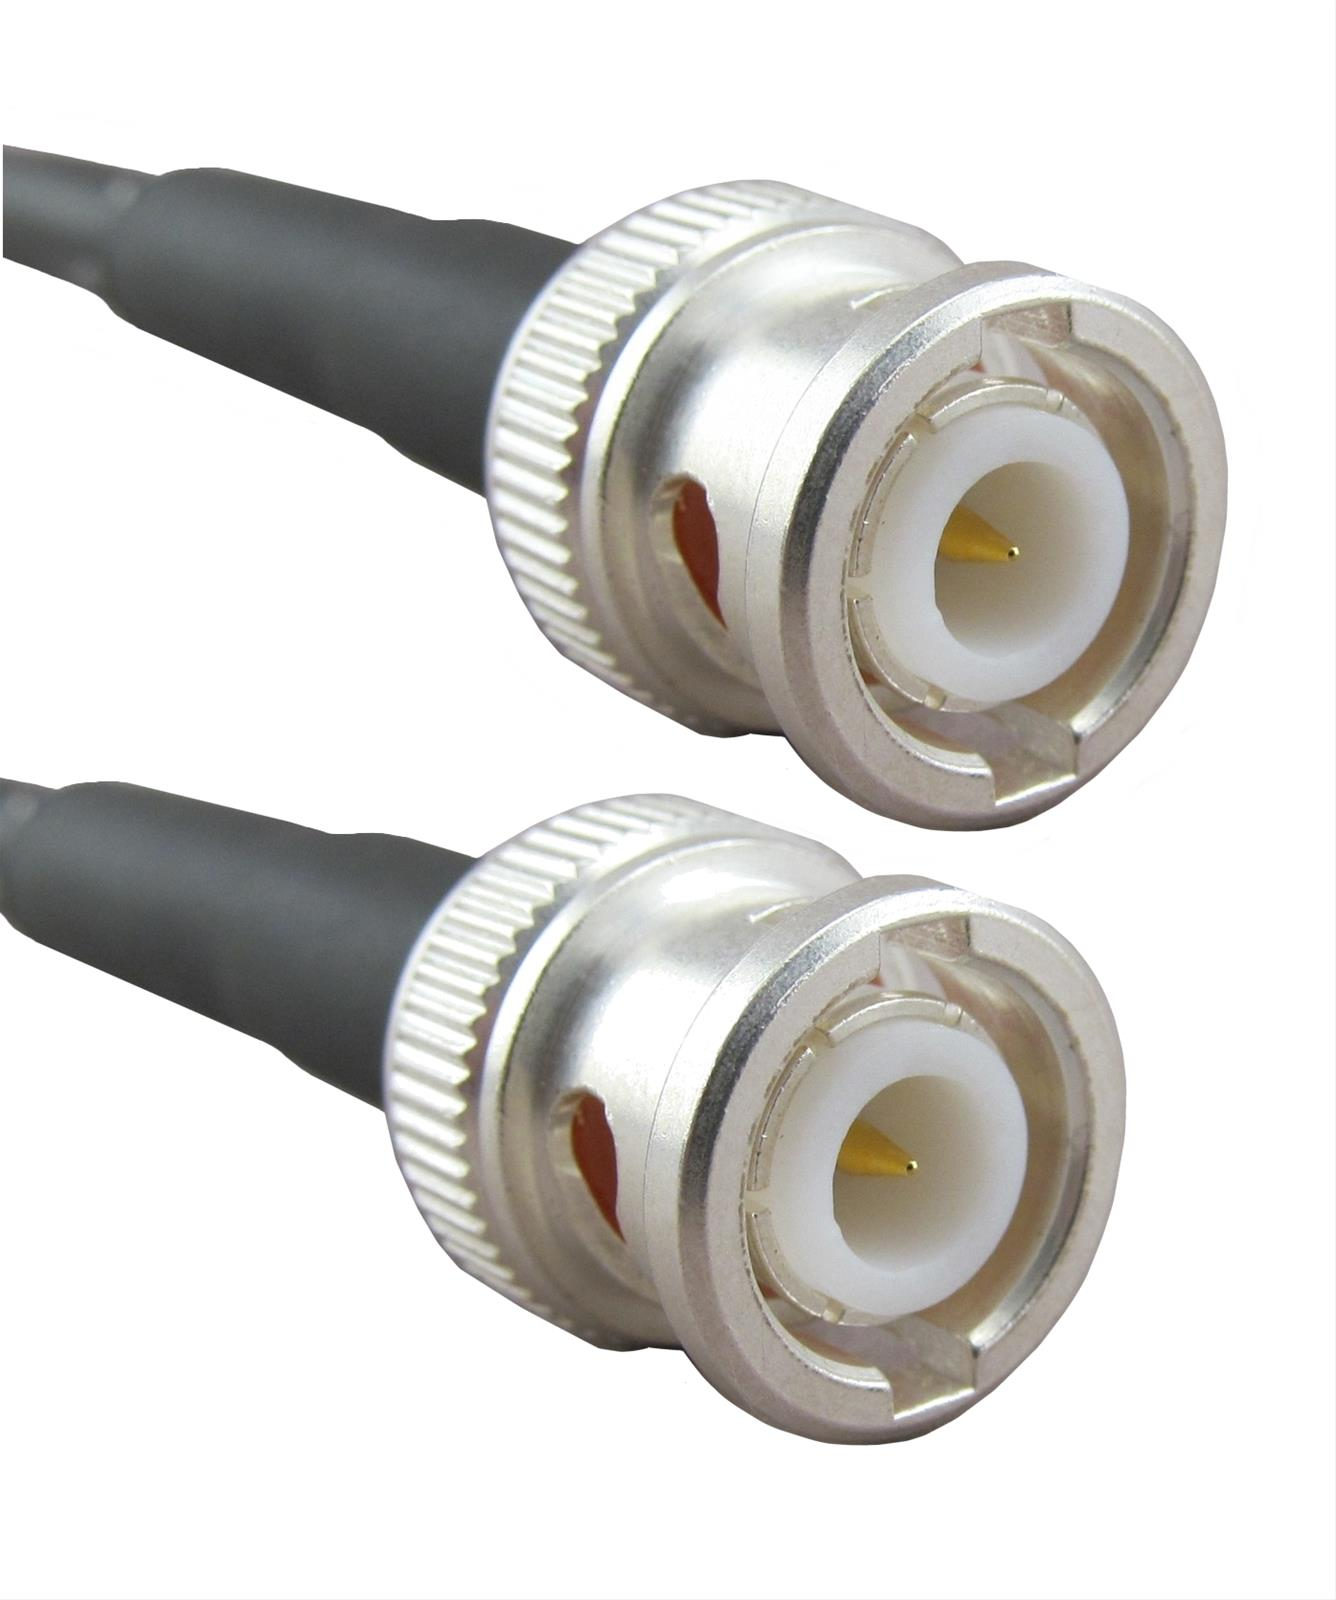 Coaxial Cable Dx Engineering Rg 8x Bnc Low Loss 50 Ohm Coax Cable Assemblies Dxe 8xdb002